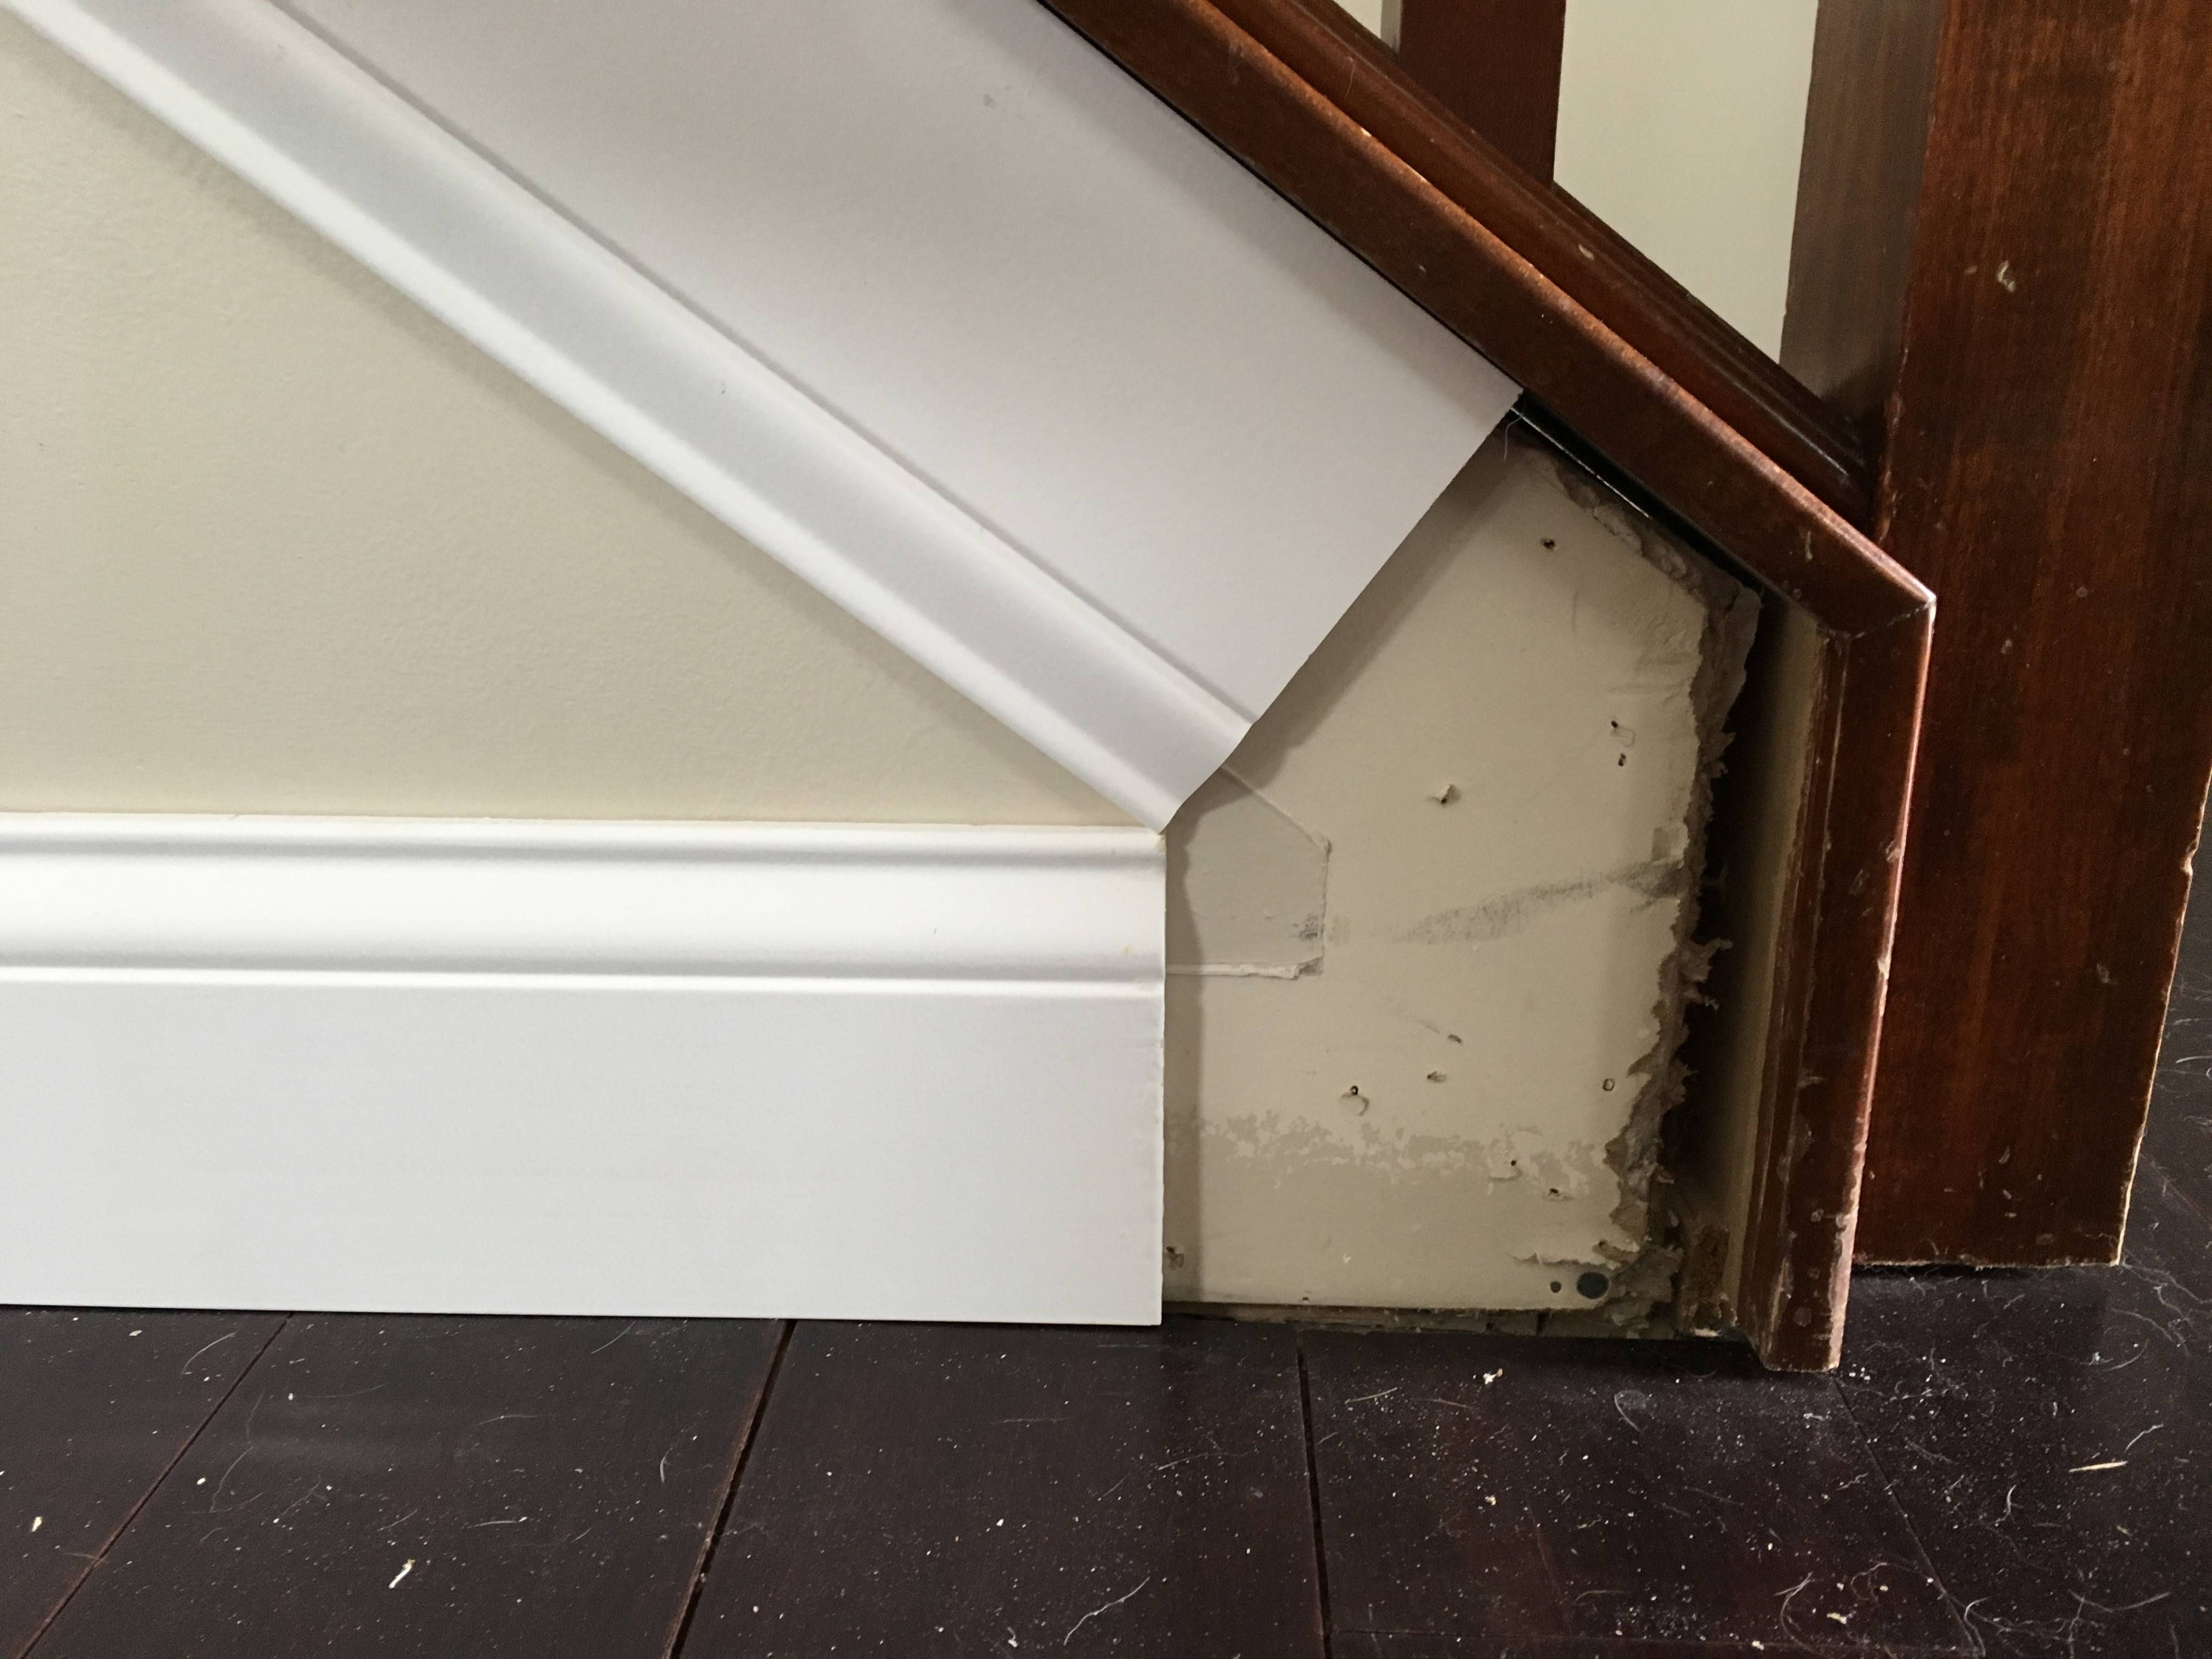 How Do I Find The Angles For Baseboard On An Outside Stair Stringer Home Improvement Stack Exchange Outside Stairs Stairs Trim Moldings And Trim